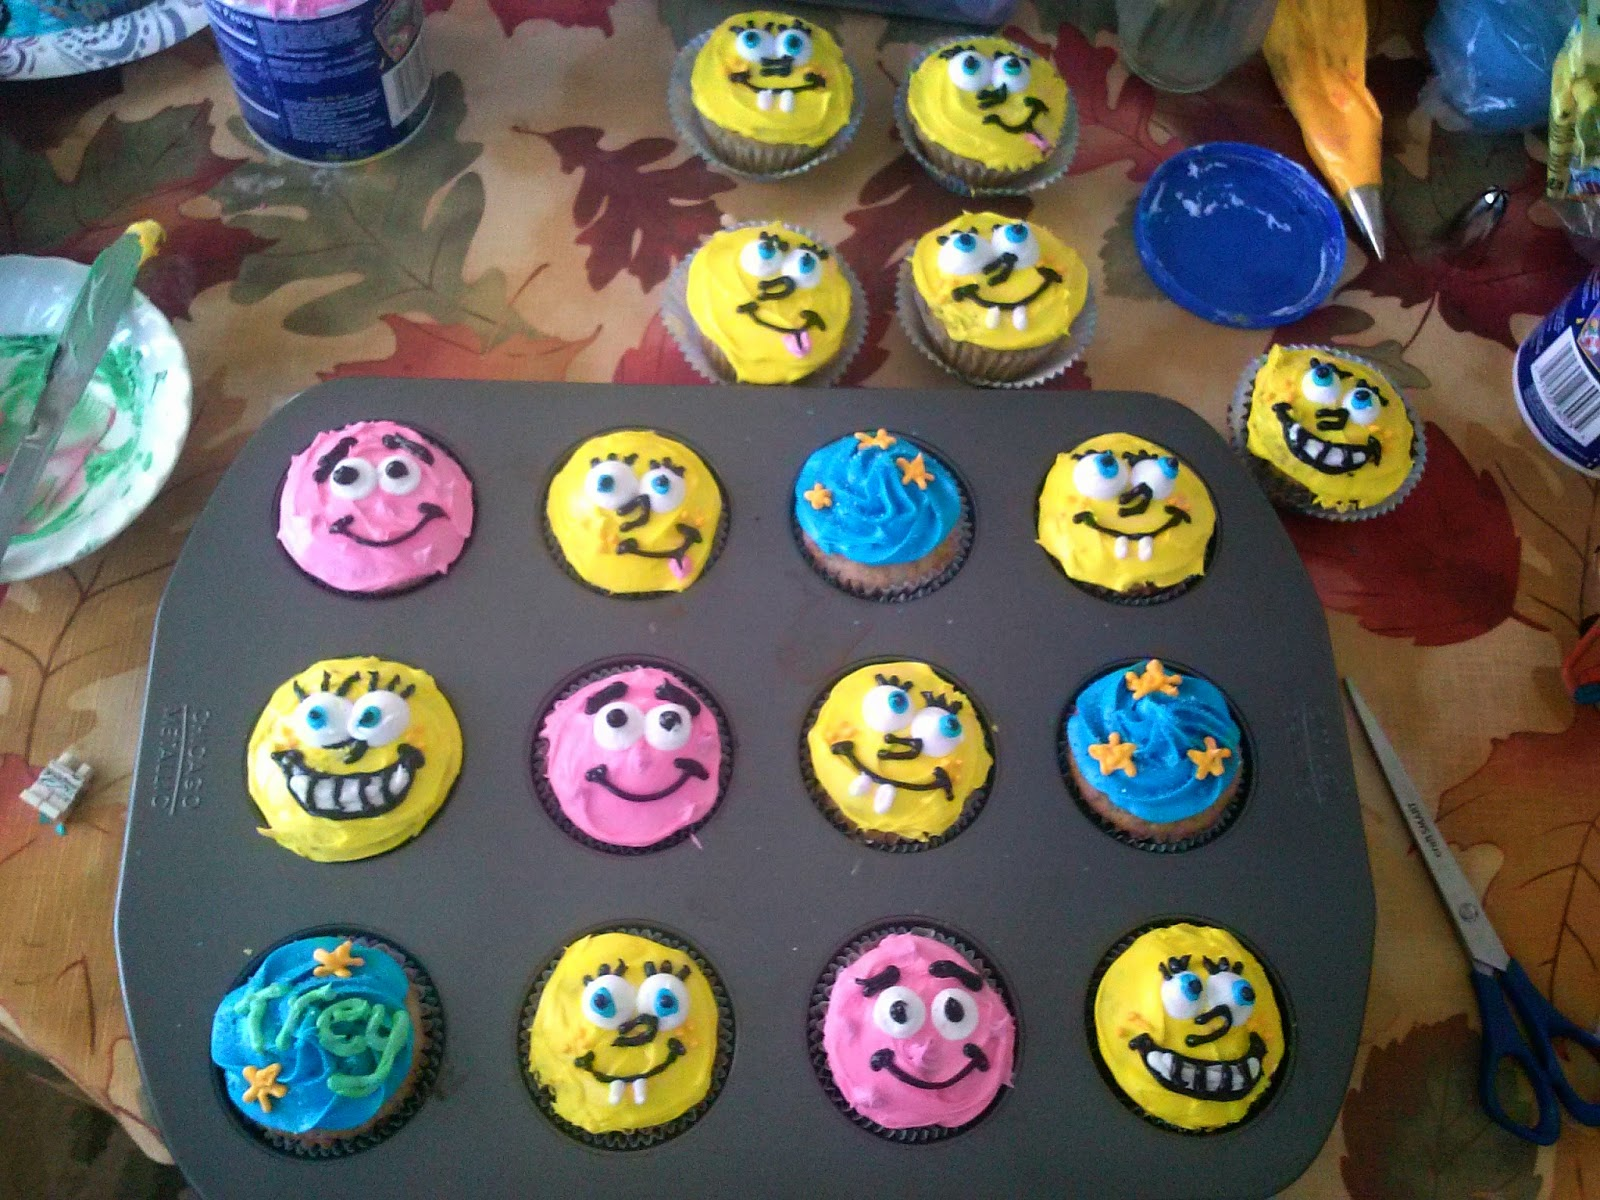 I Didnt Have Much Time To Go All Out But Wanted Make Something Special For My Nephews 3rd Birthday So Decided On Spongebob Cupcakes